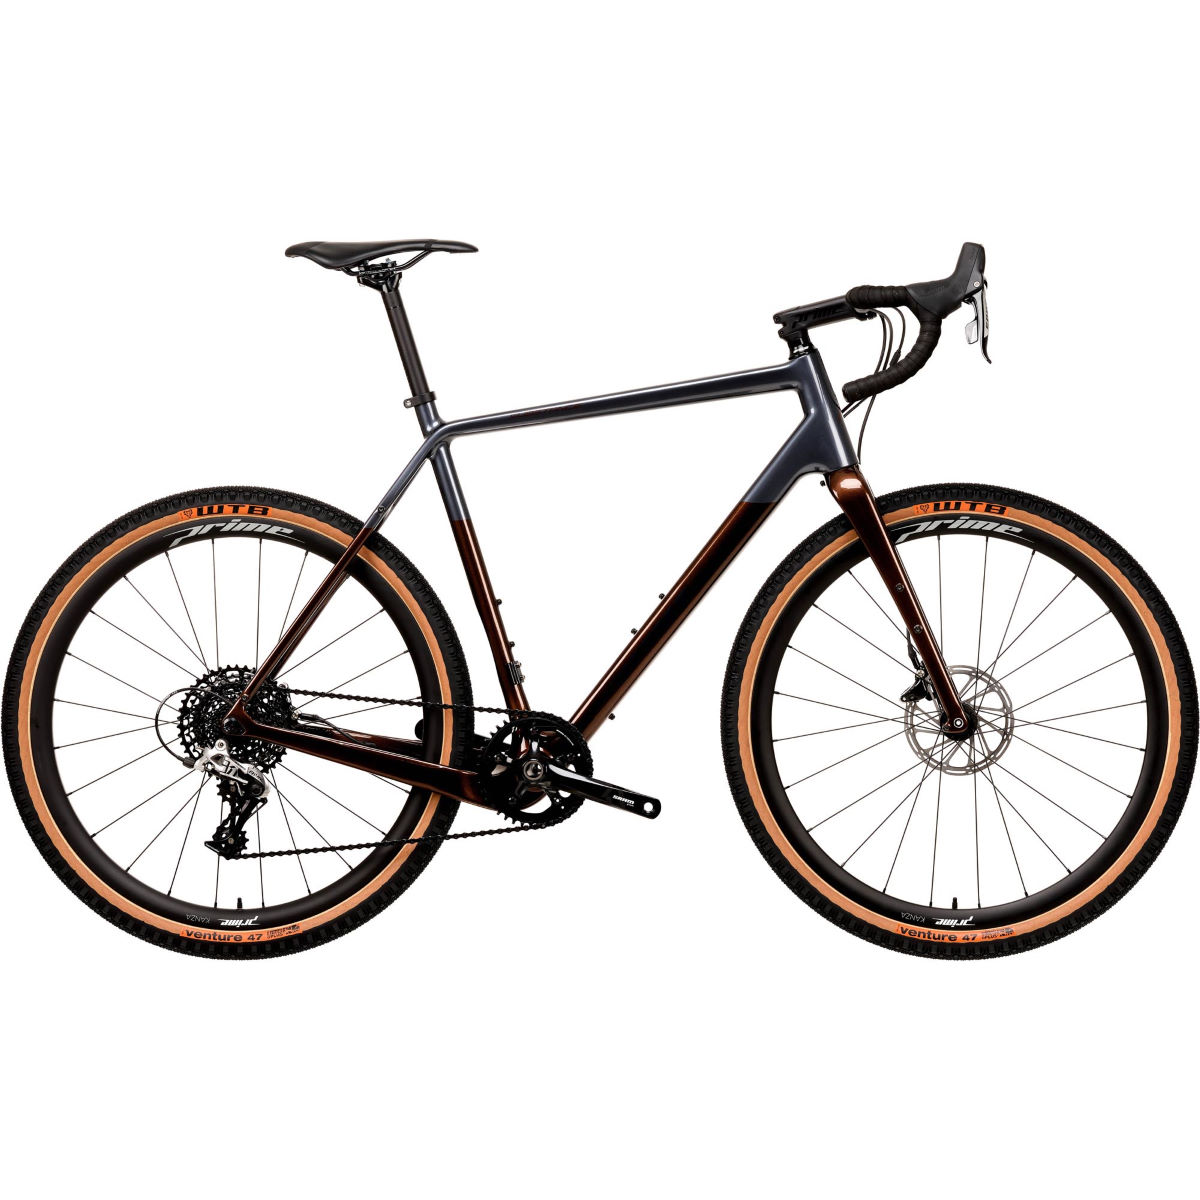 Vitus Vitus Substance CRX Adventure Road Bike (2020)   Adventure Bikes